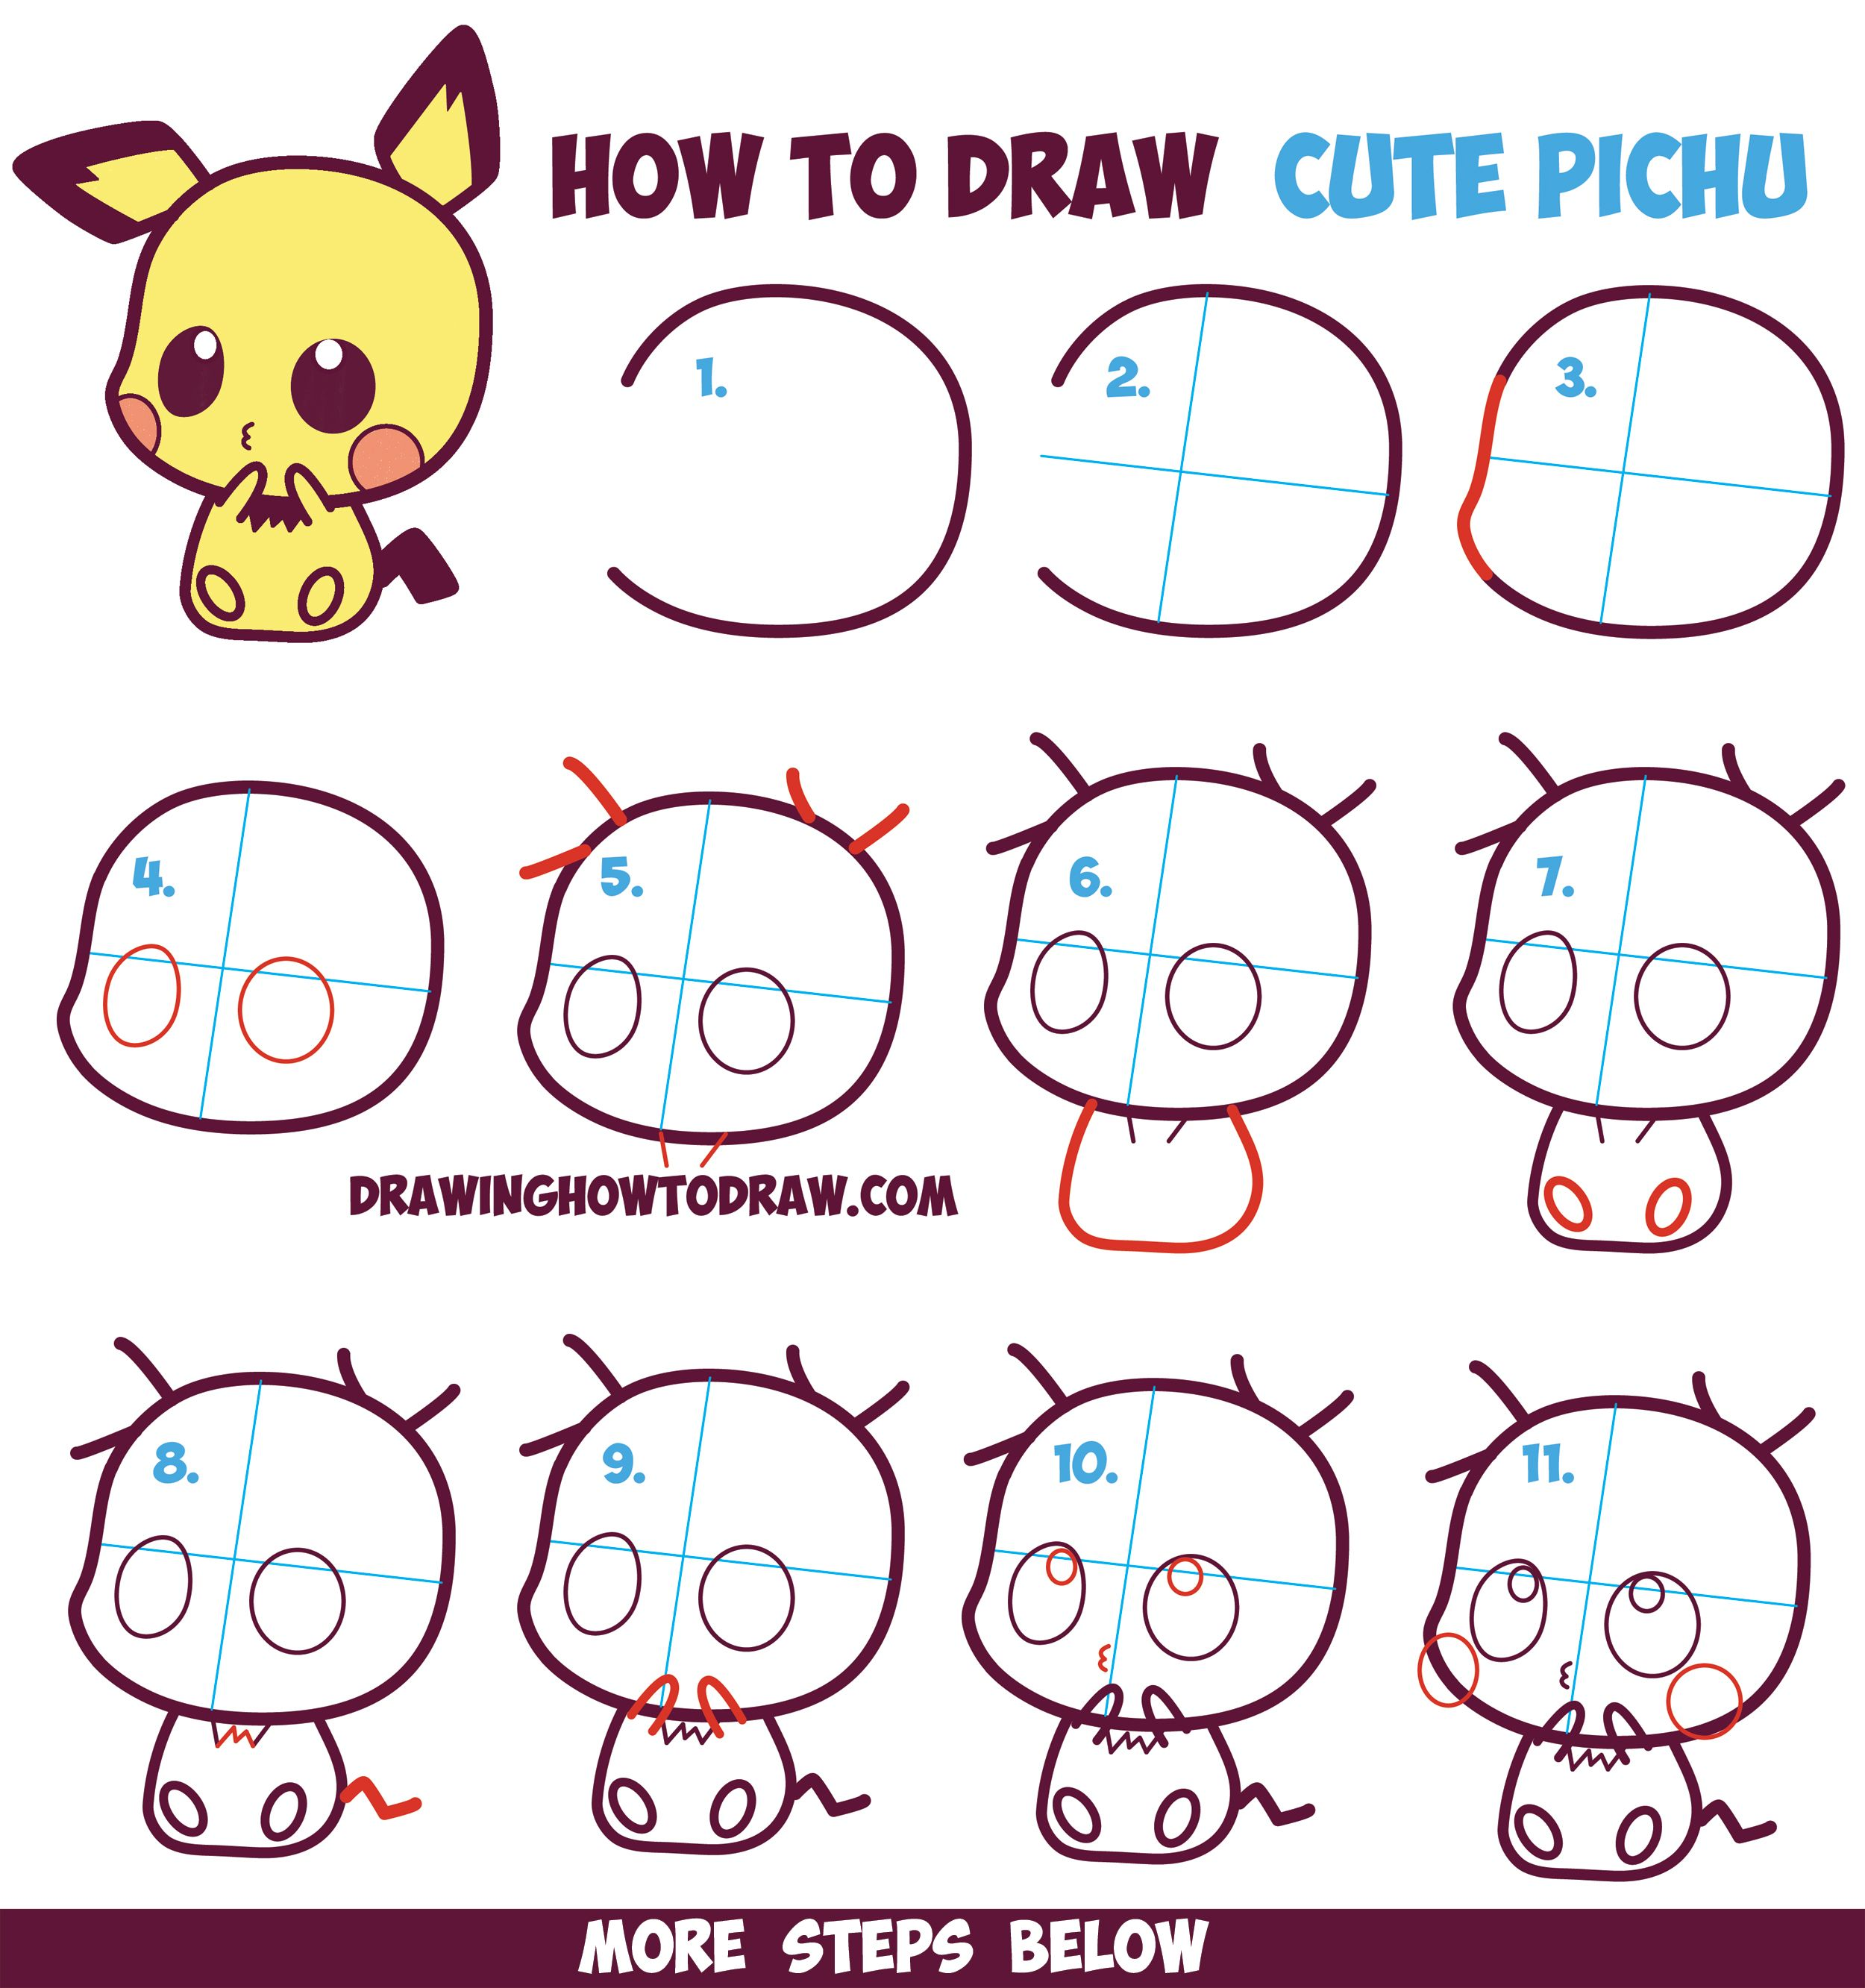 How To Draw Cute Kawaii Chibi Pichu From Pokemon In Easy Step By Step Drawing Tutorial For Kids And Beginners How To Draw Step By Step Drawing Tutorials